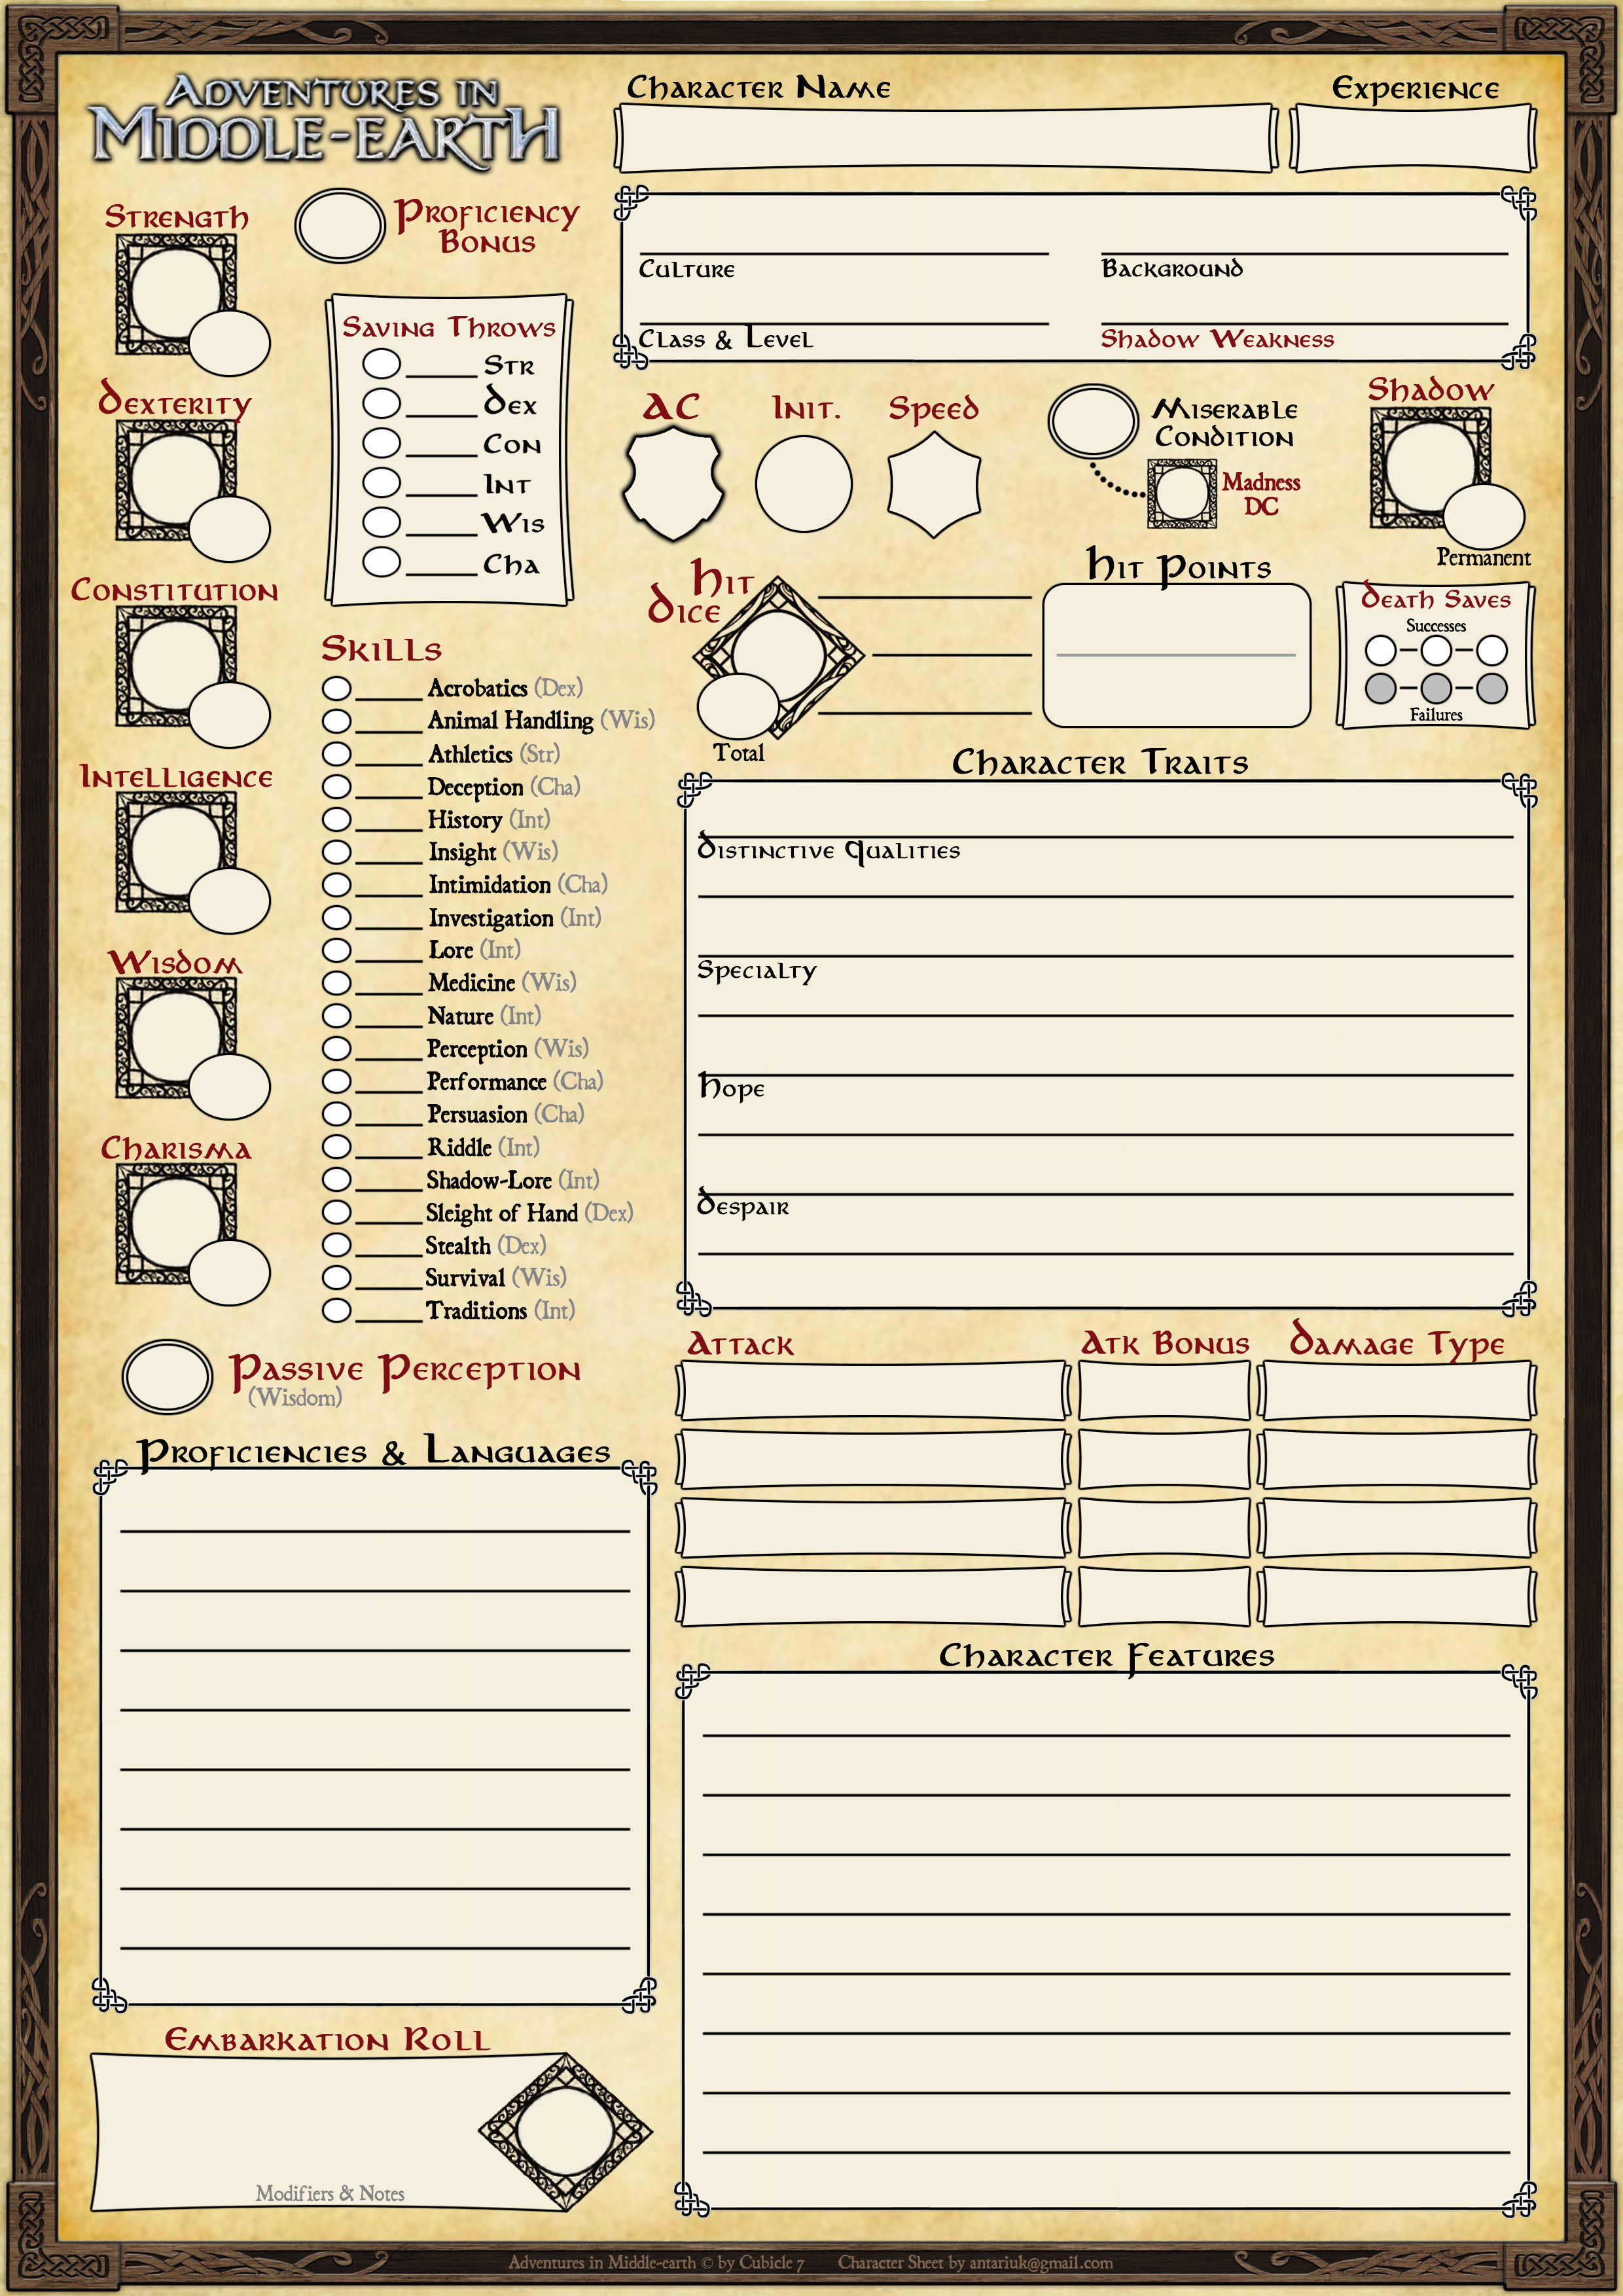 Custom Character Sheet Design : Custom character sheets for adventures in middle earth